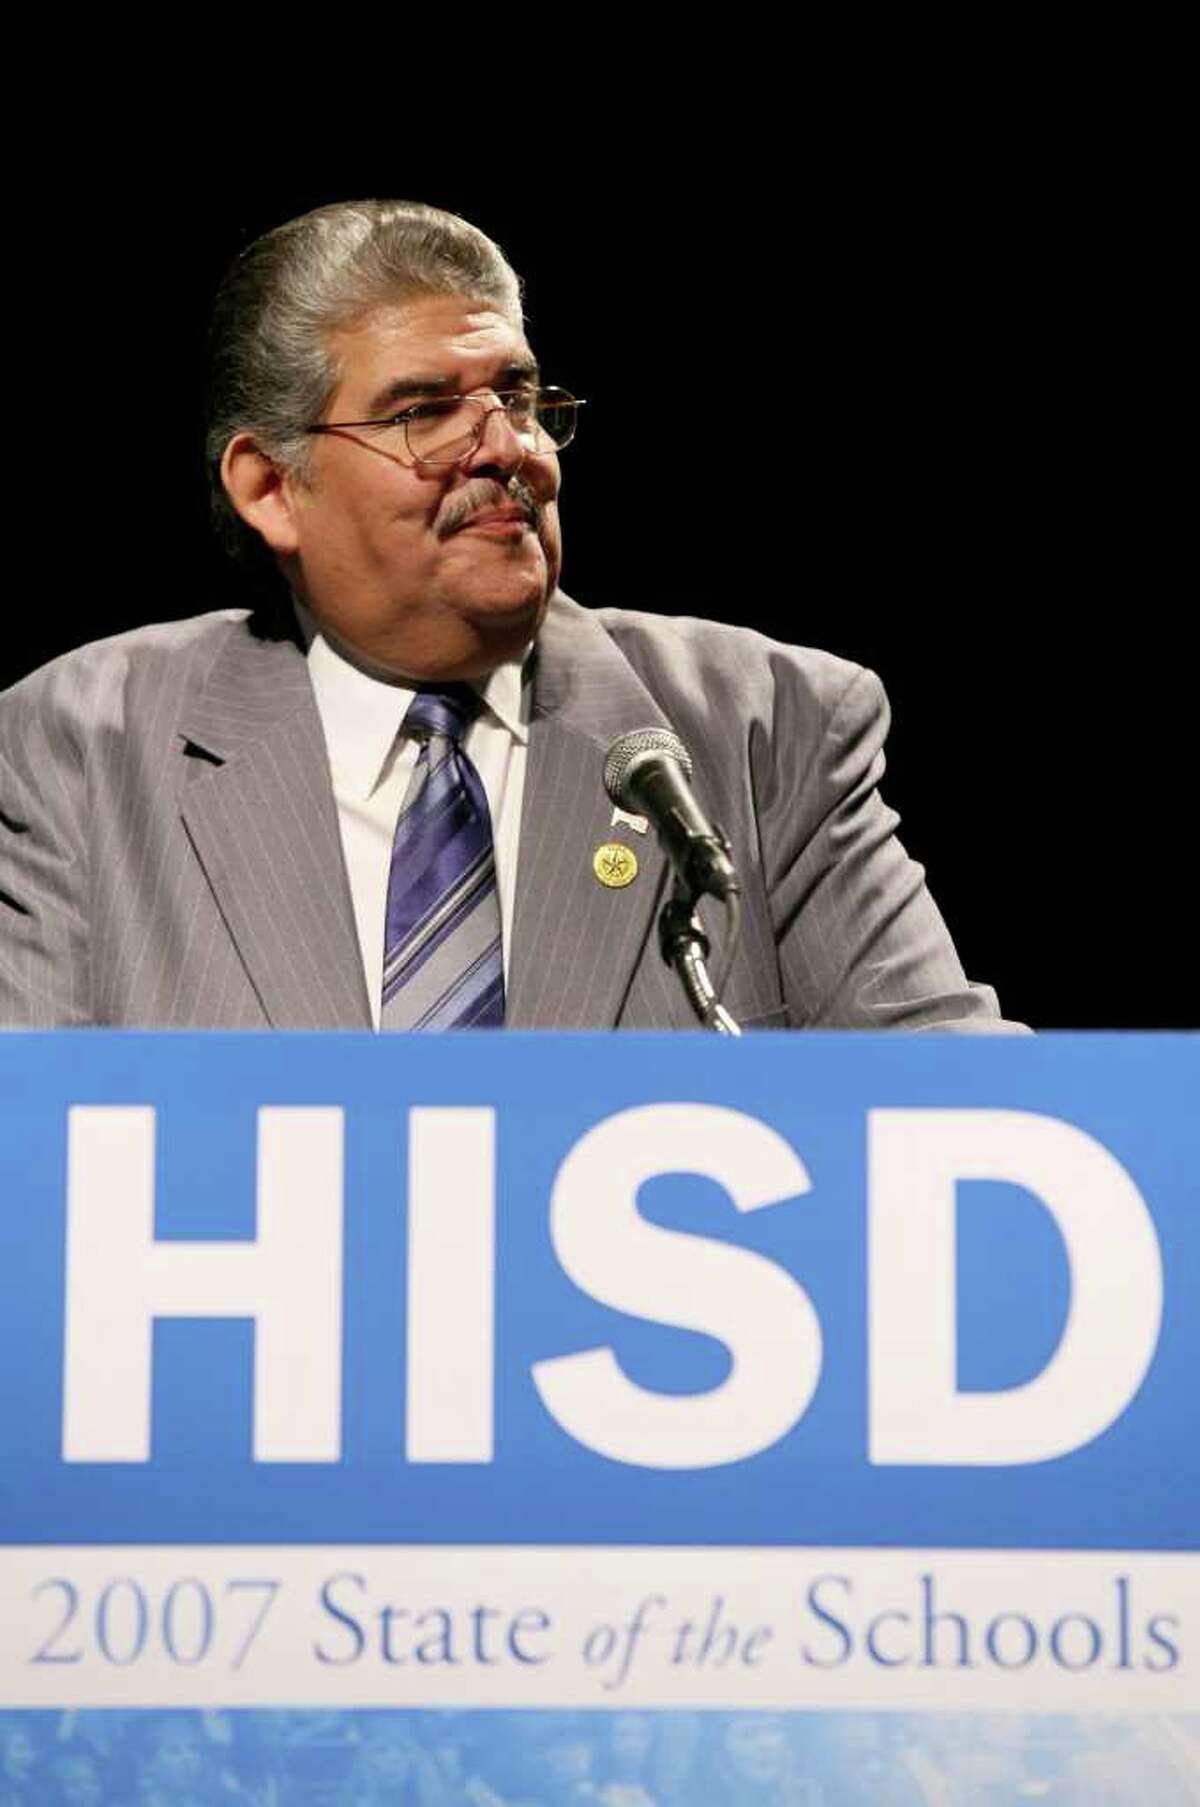 HISD Trustee Manuel Rodriguez speaks at the State of The Schools Address at the George R. Brown Convention Center in Houston, Texas on Friday, Feb. 09, 2007. Rodriguez died July 19, 2017. (Erin Trieb / For The Chronicle)